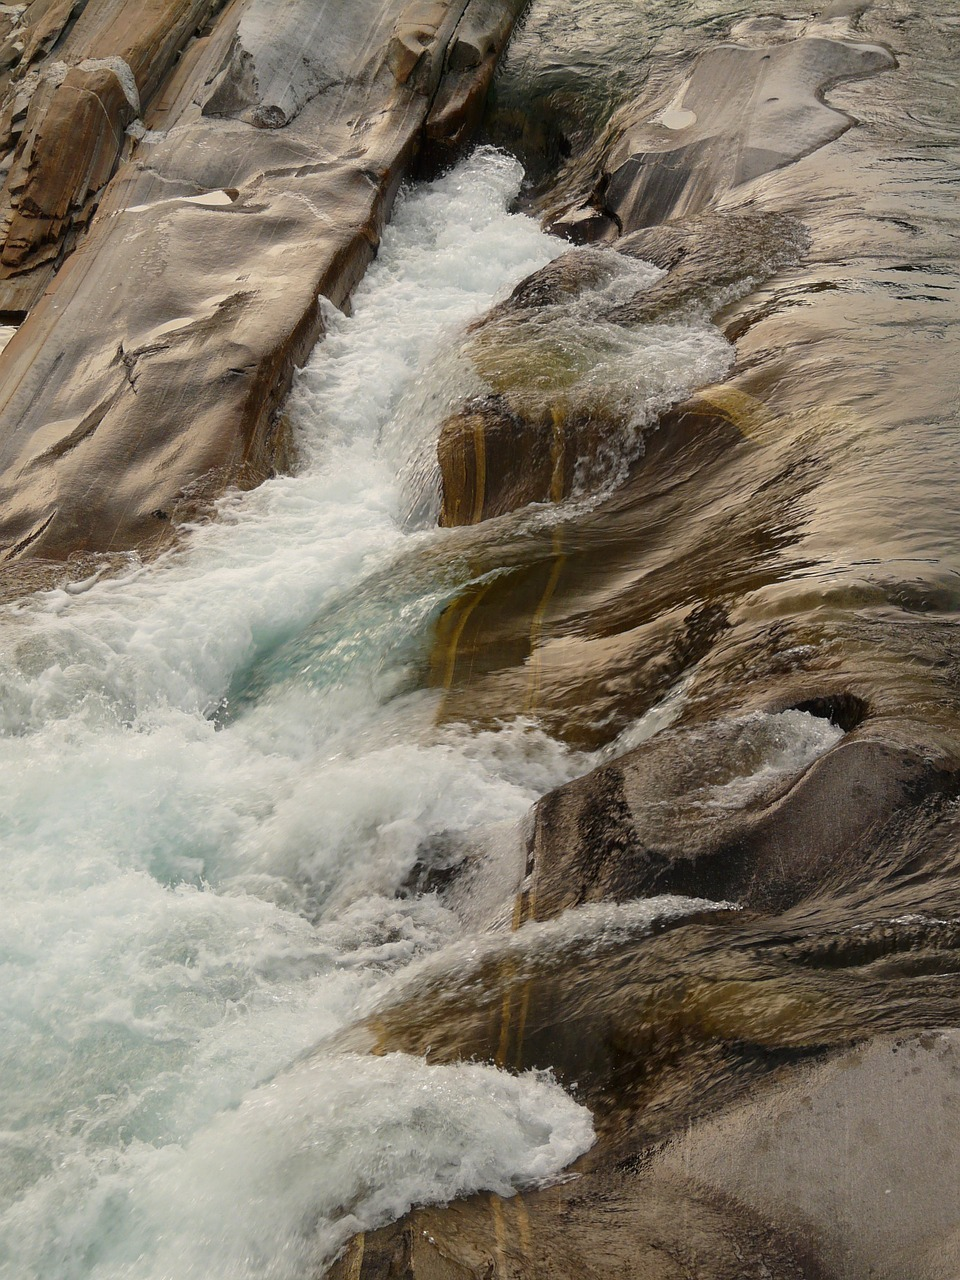 water,waterfall,clear,verzasca,flow,splash,free pictures, free photos, free images, royalty free, free illustrations, public domain